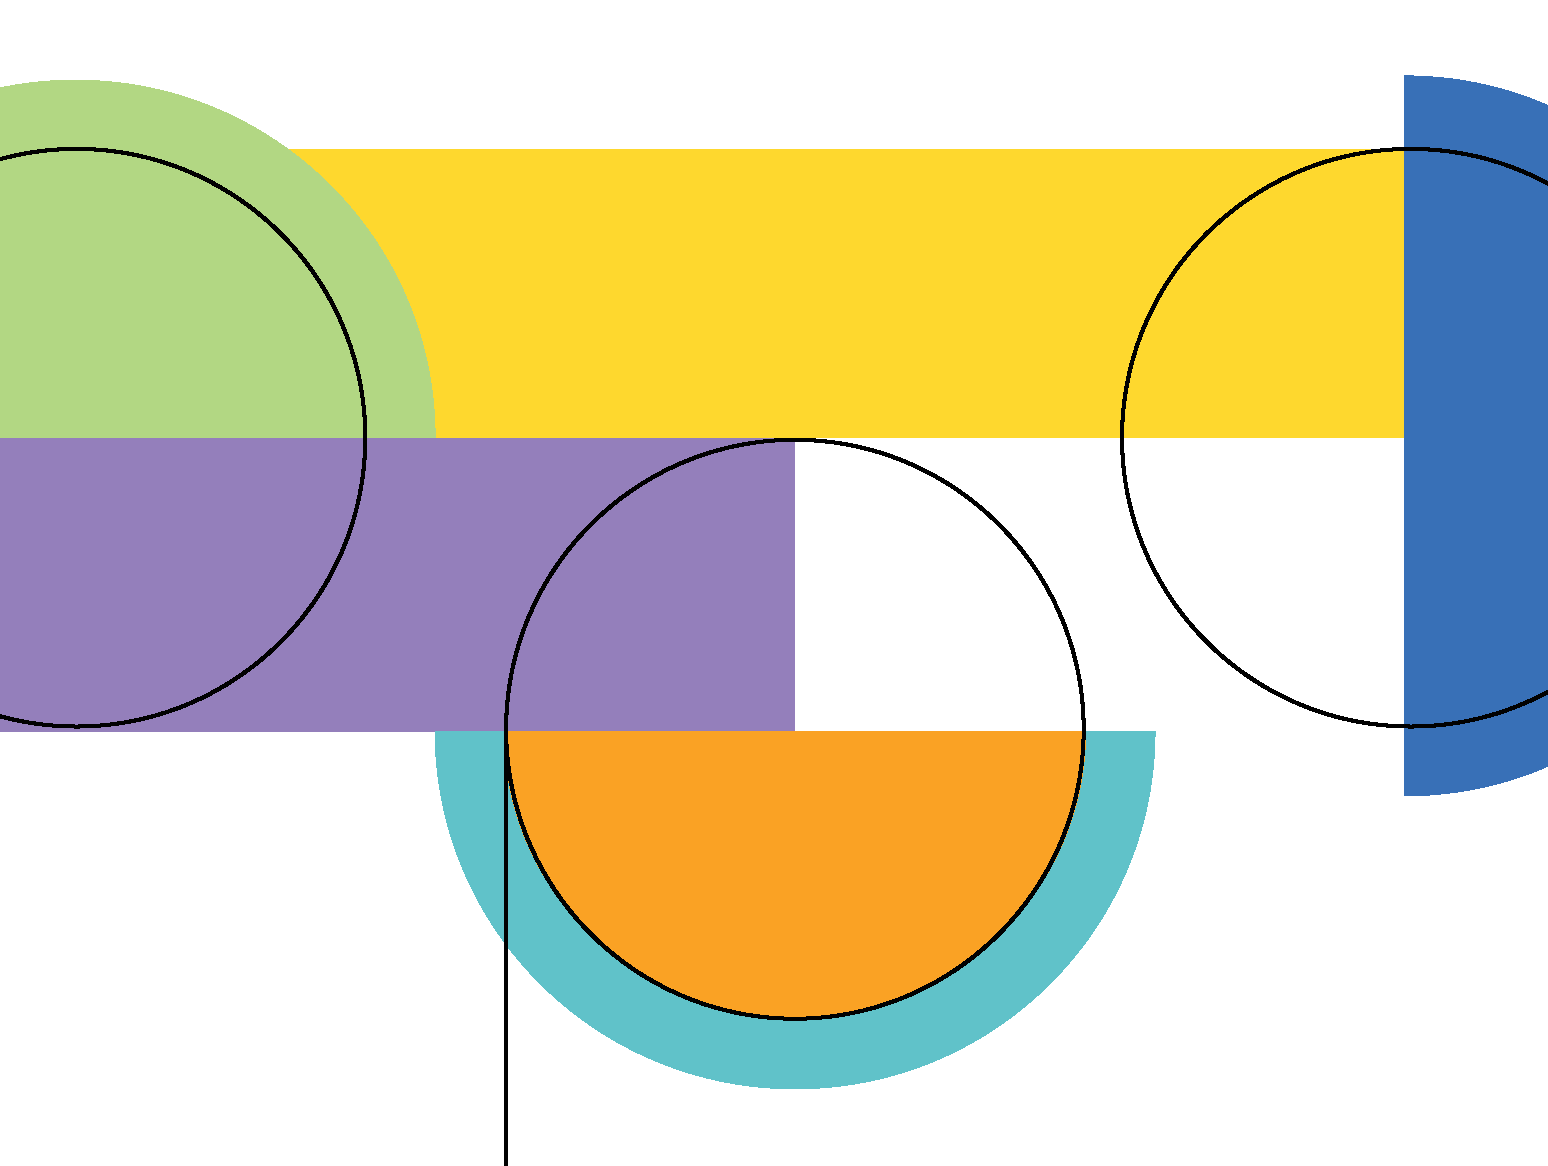 Abstract image of circles and colored rectangles.